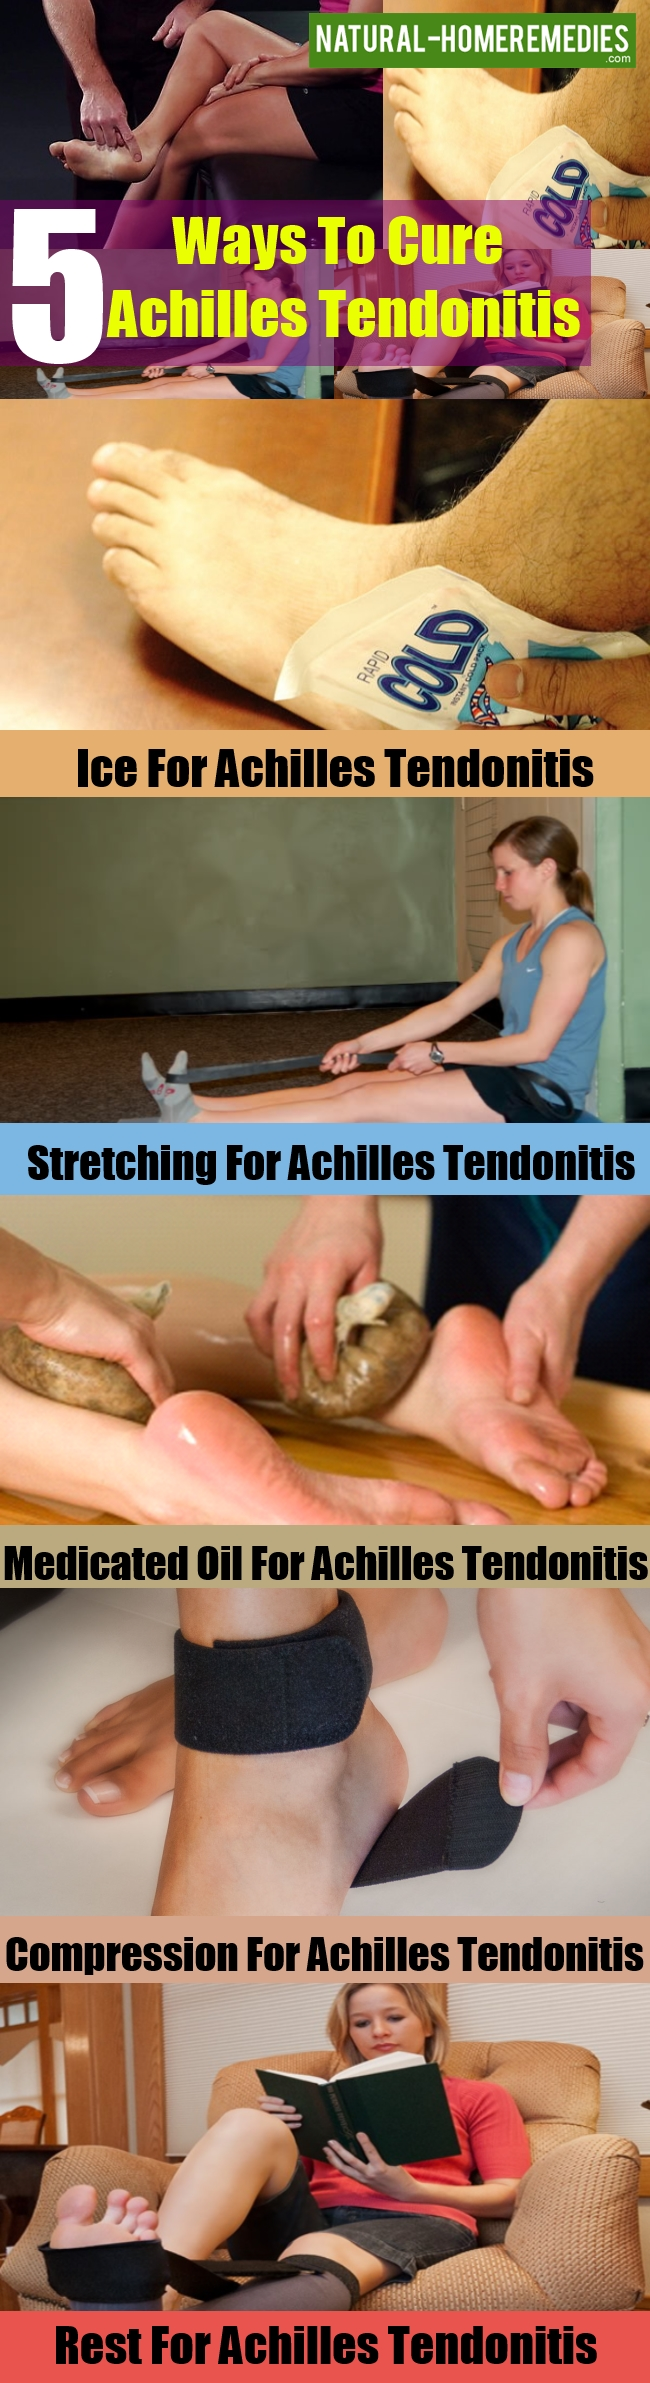 Ways To Cure Achilles Tendonitis